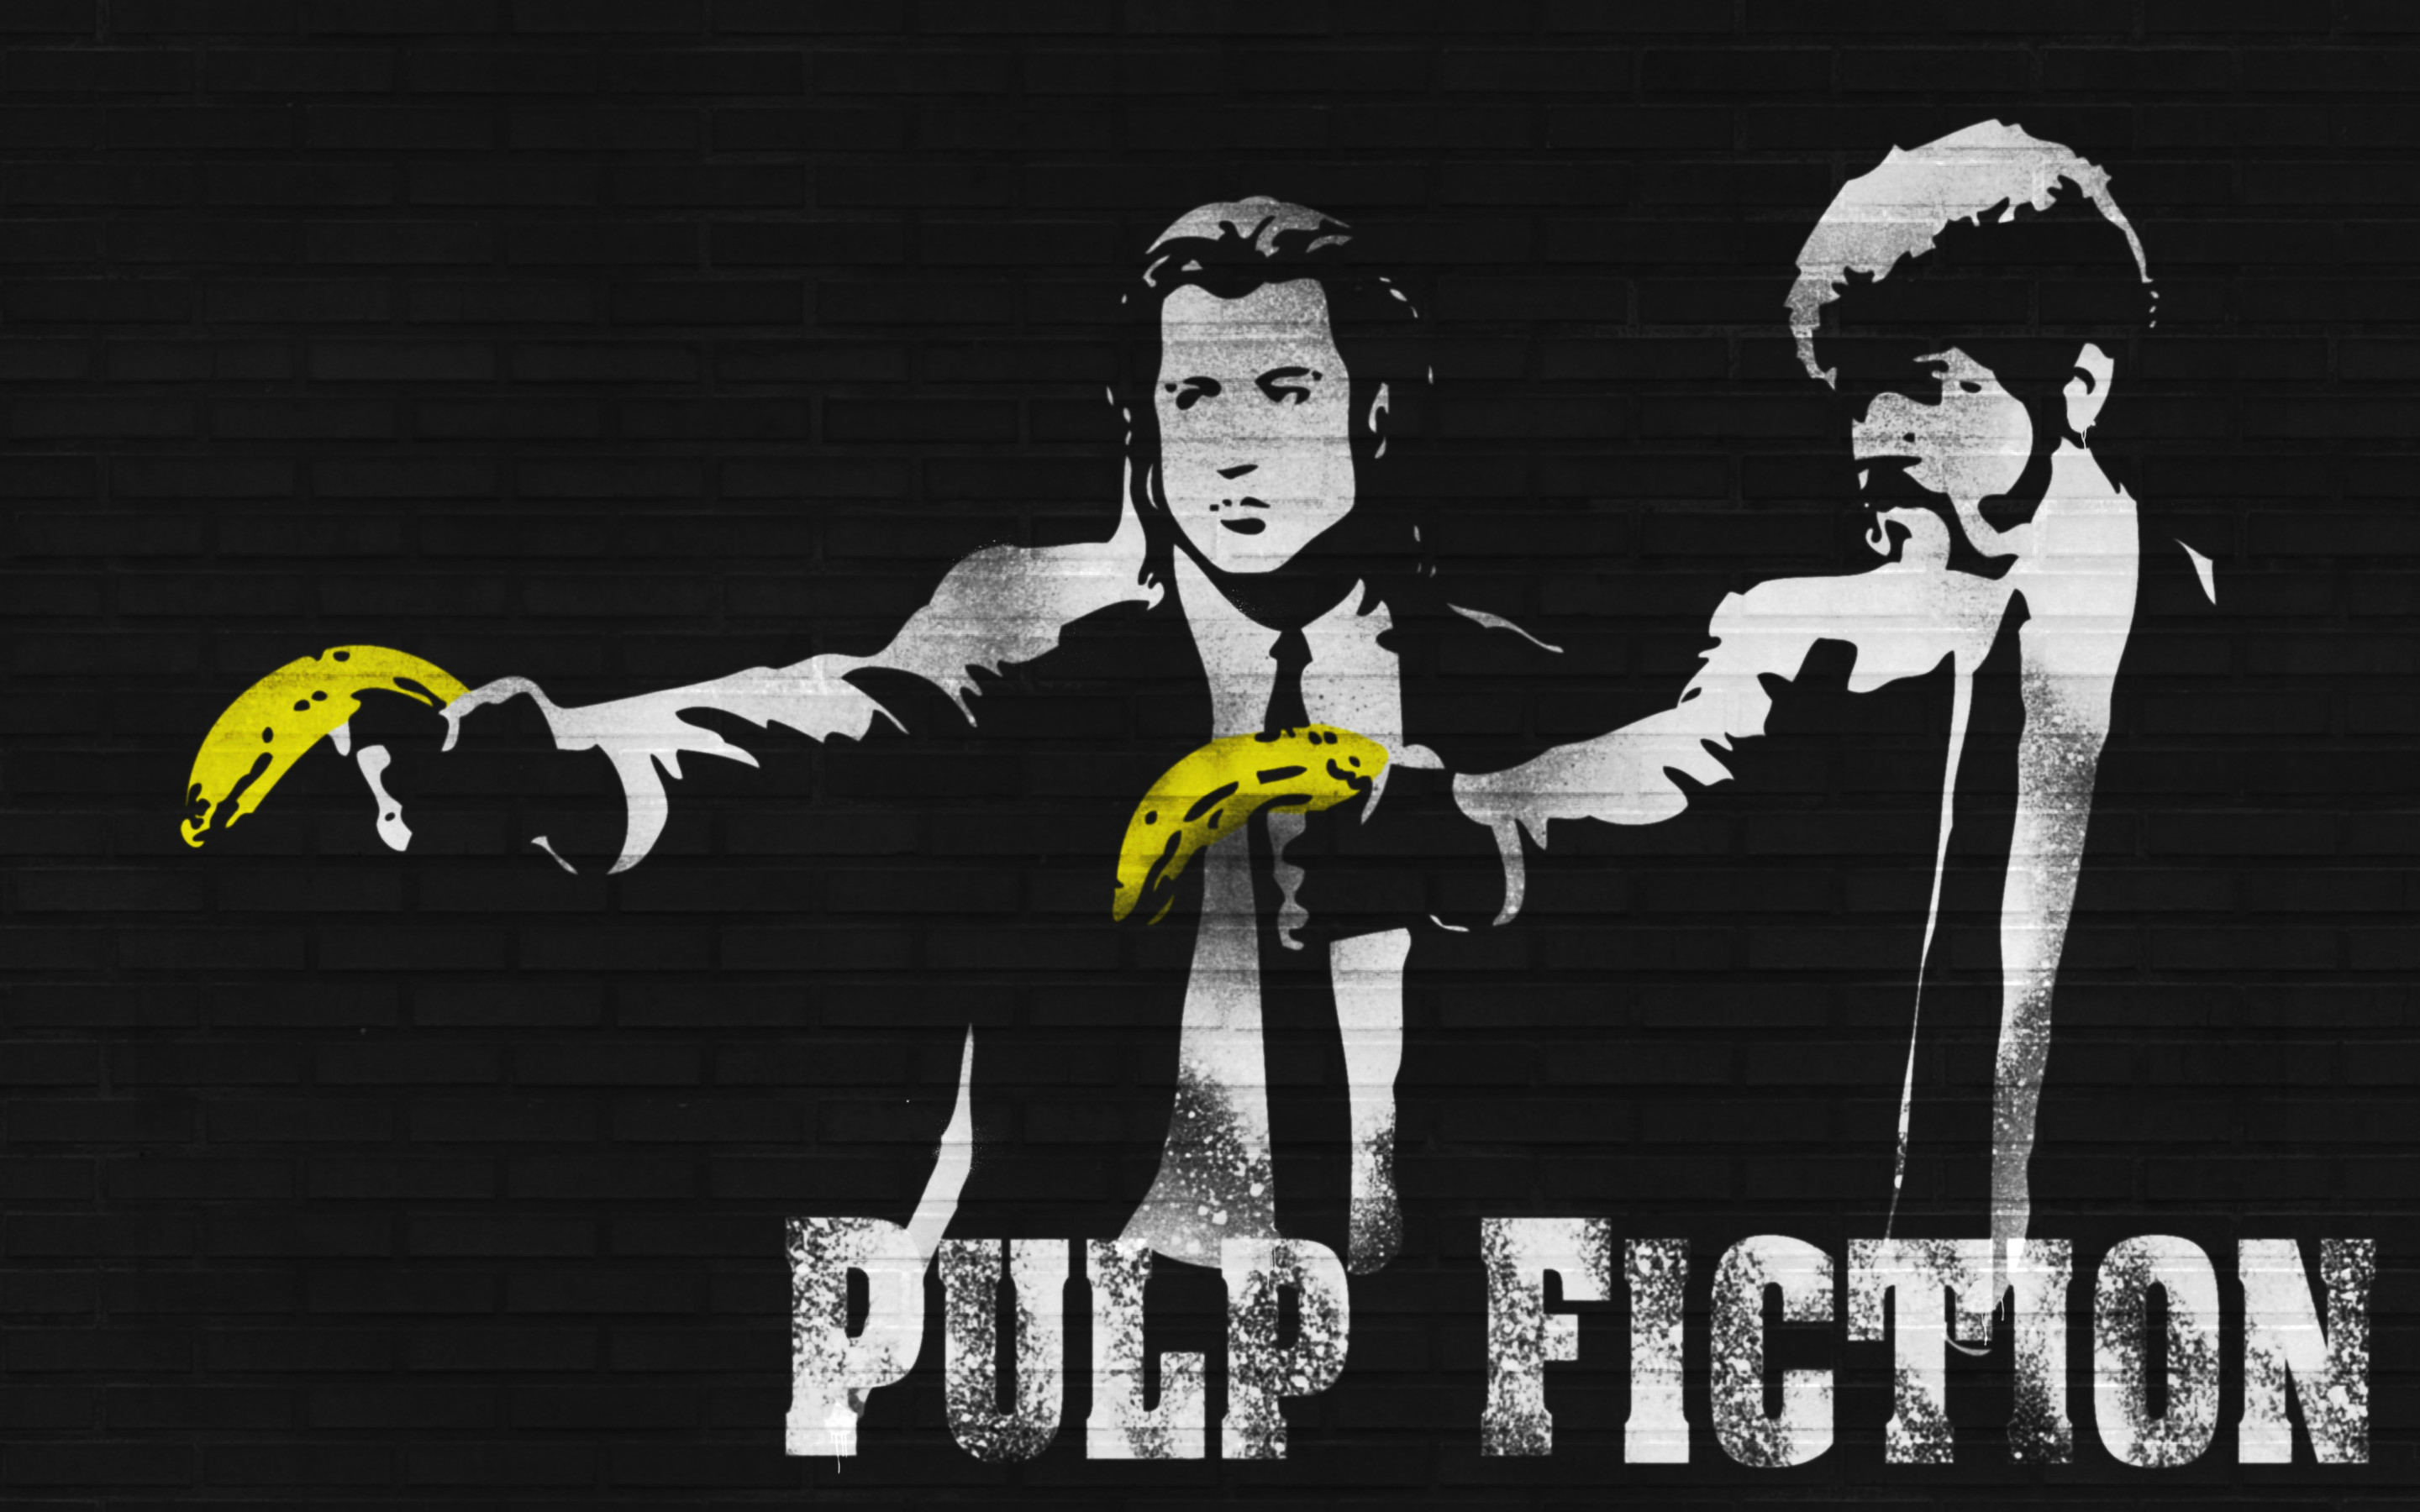 … pulp fiction bananas wallpapers hd desktop and mobile backgrounds …